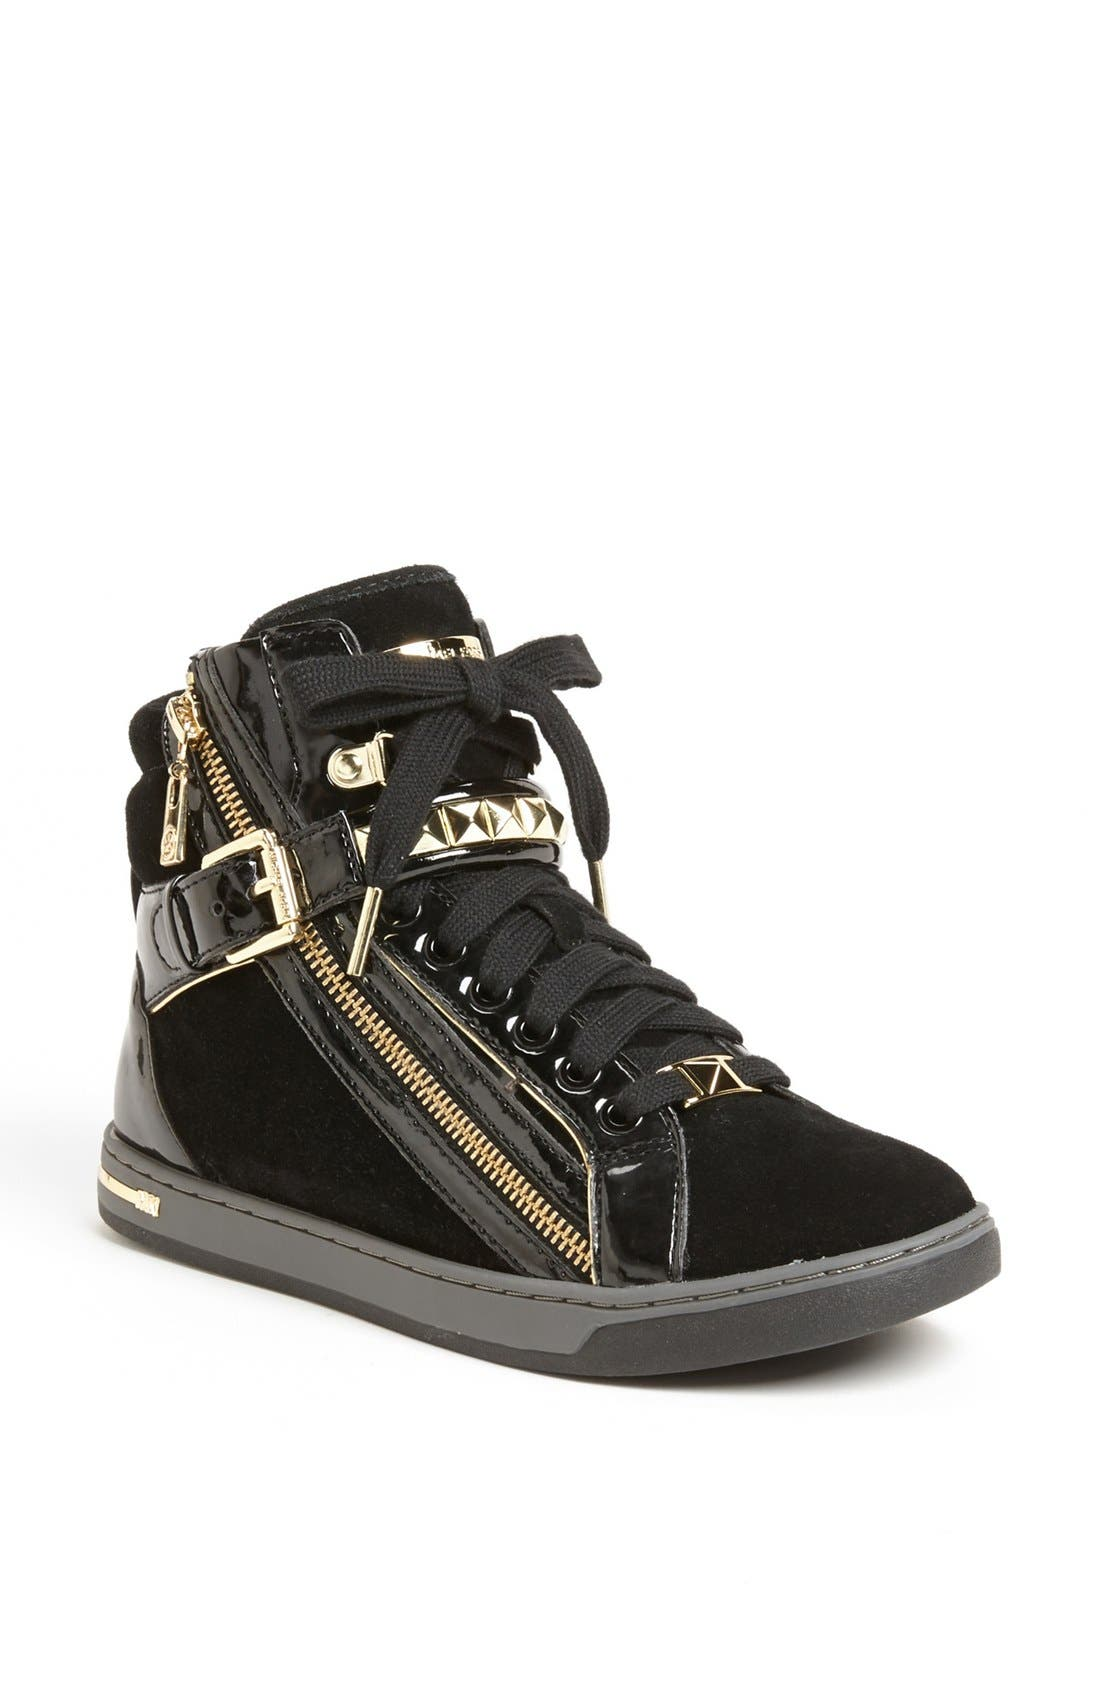 Alternate Image 1 Selected - MICHAEL Michael Kors 'Glam' Studded High Top Sneaker